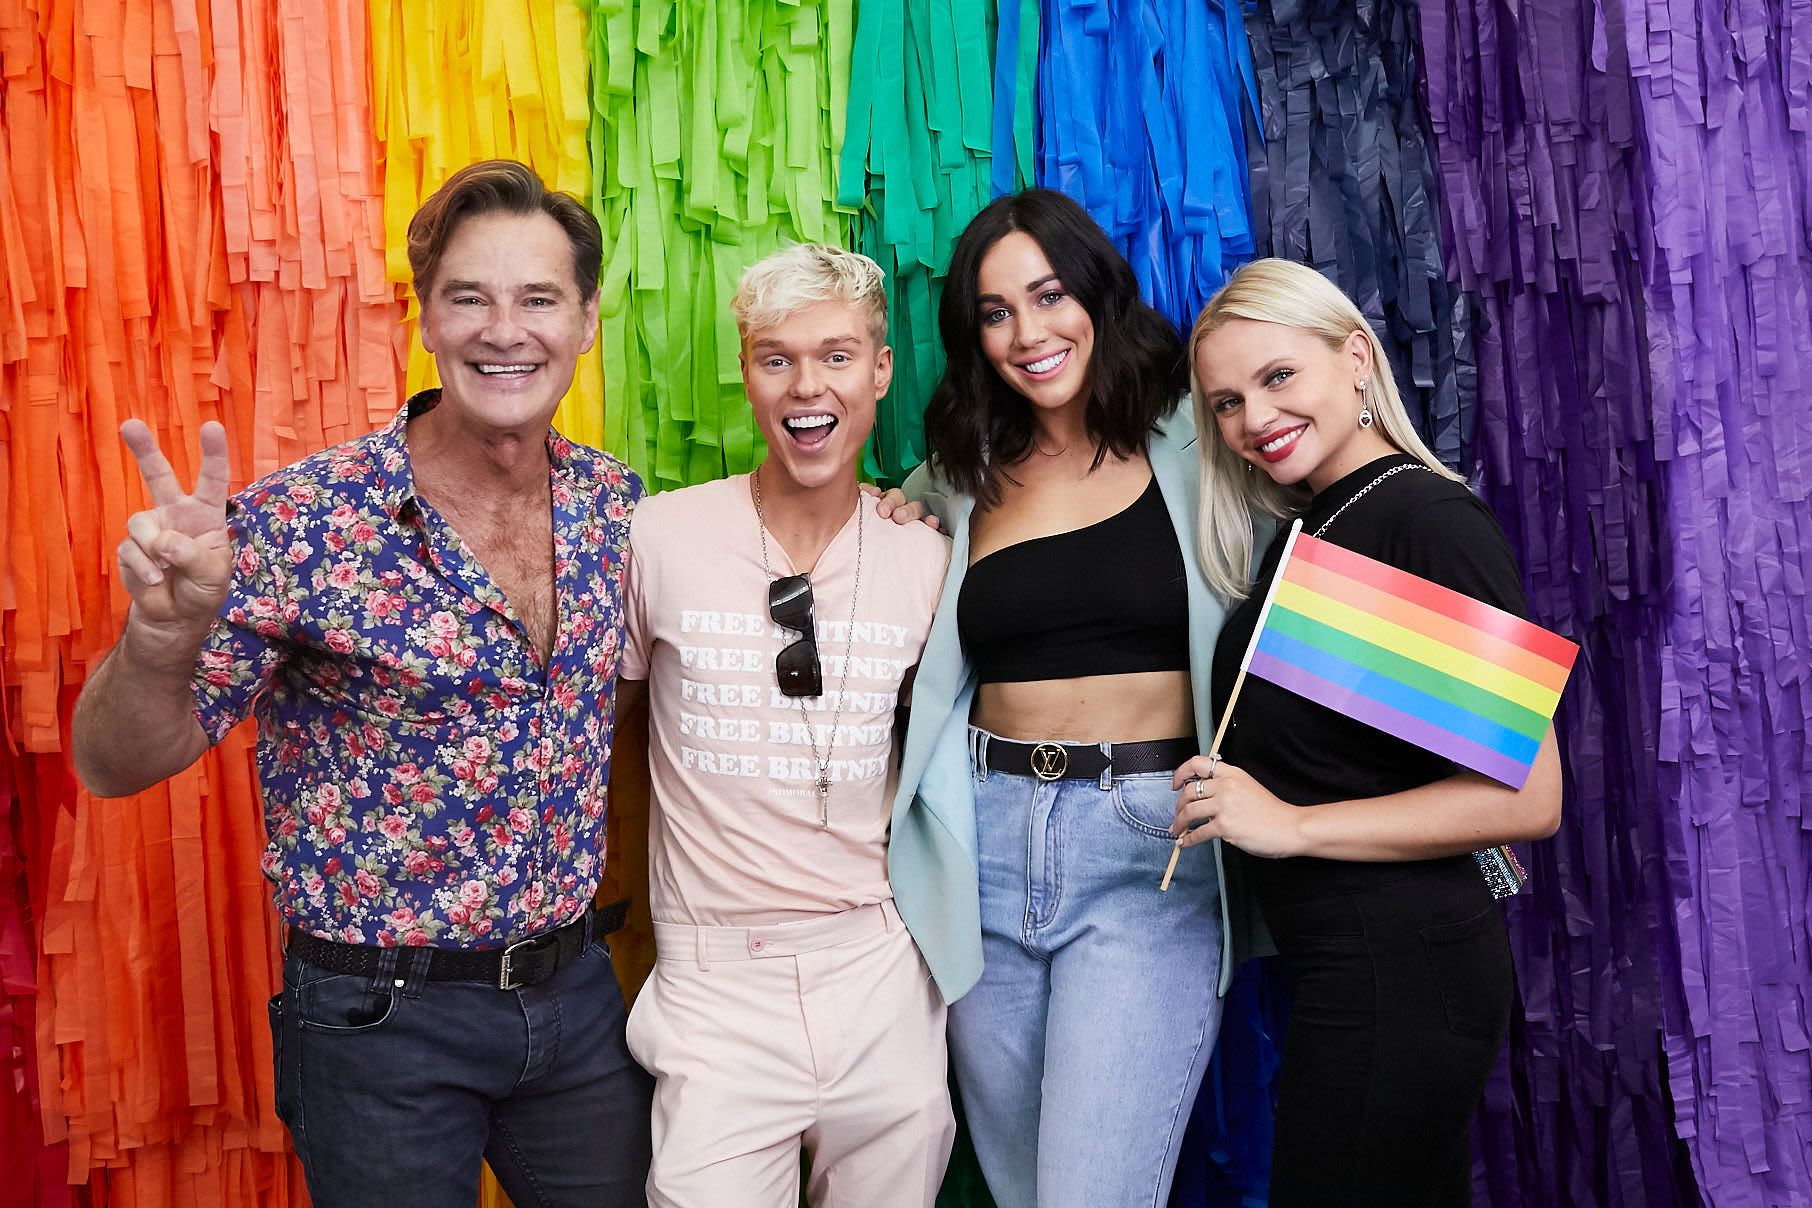 Richard Reid, Jack Vigden, Sophie Cachia and Alli simpson stand in front of a rainbow backdrop